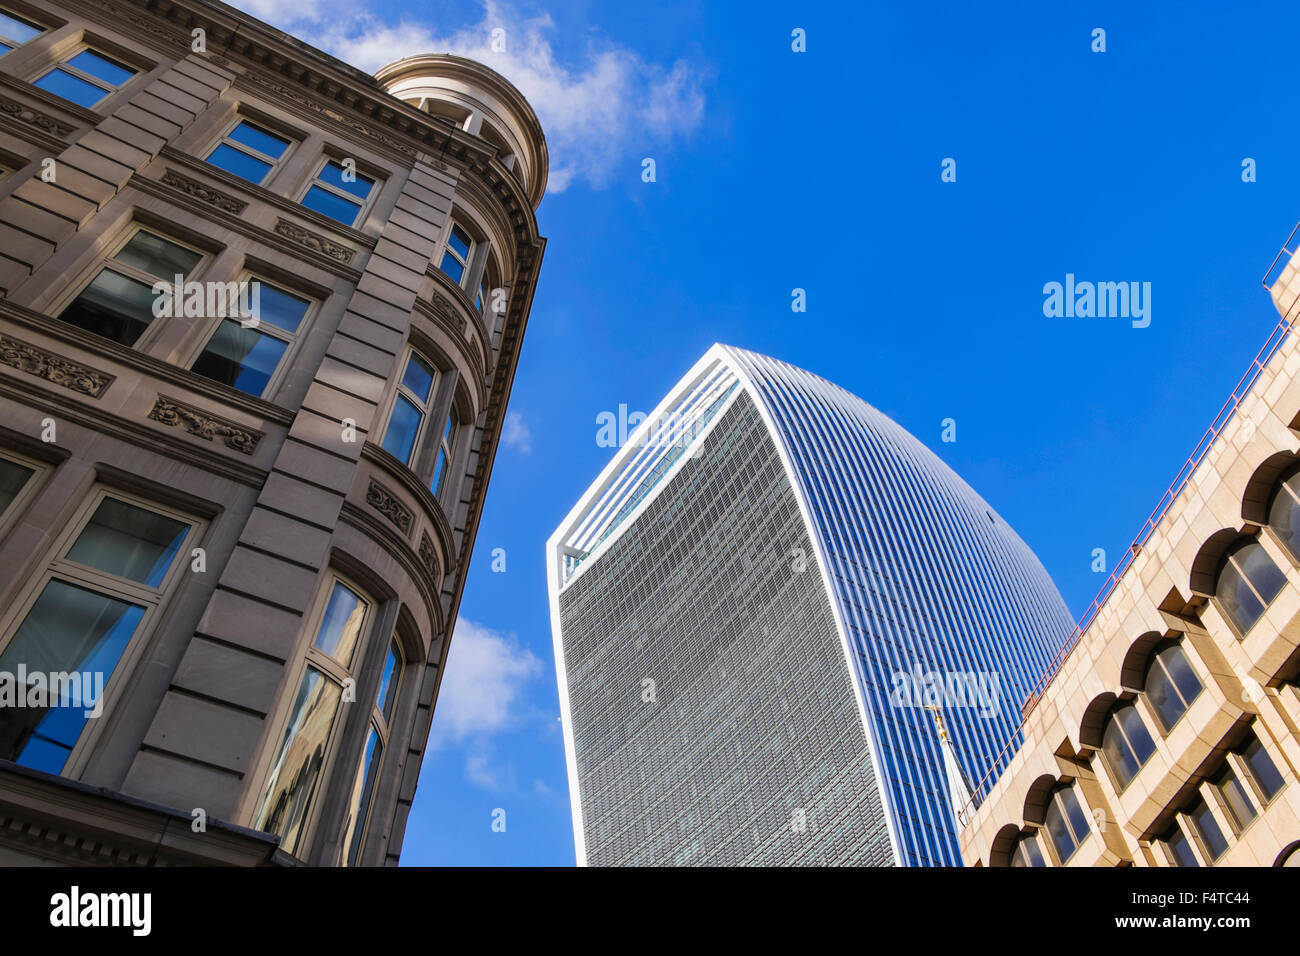 England, London, City, 20 Fenchurch Street aka The Walkie-Talkie Building, Architect Rafael Vinoly Stock Photo